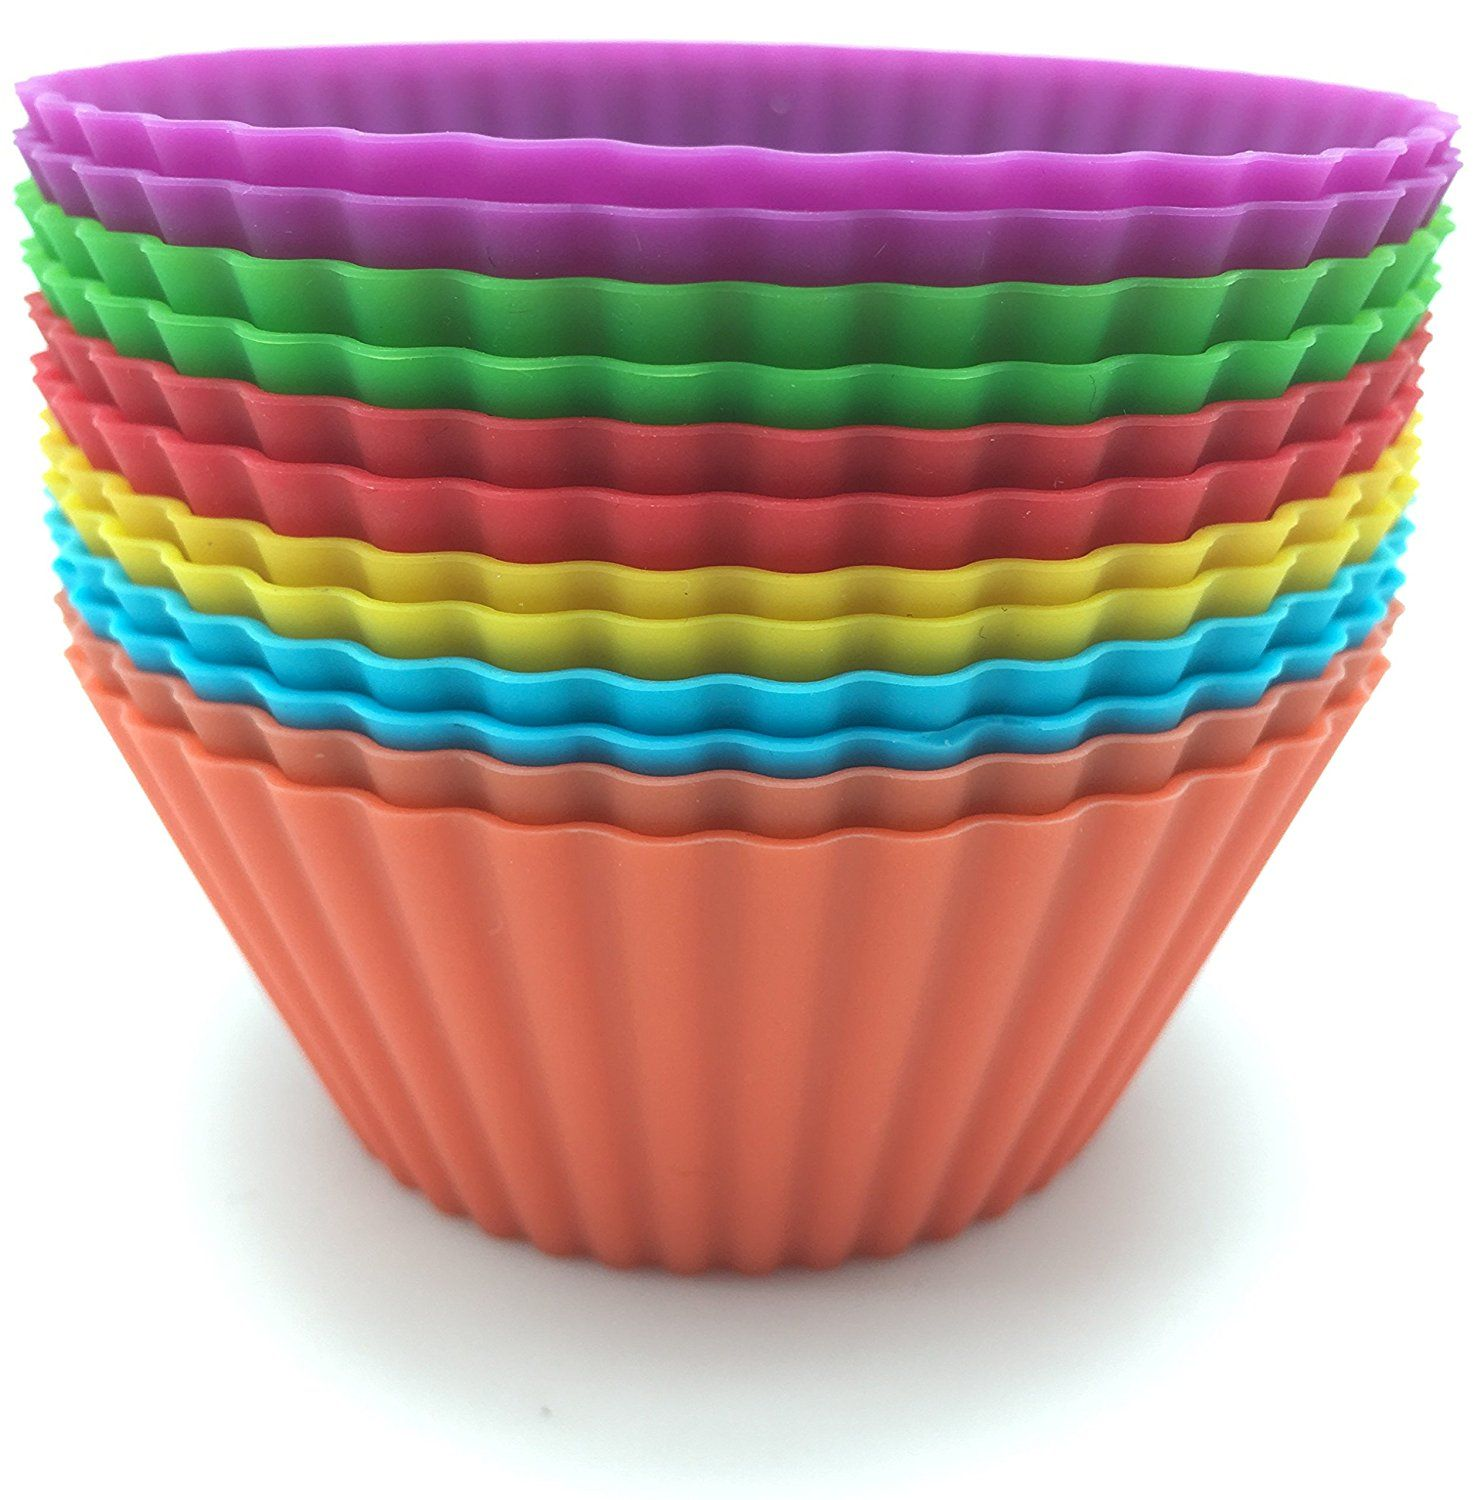 AGCware Silicone Baking Cups Cupcake Liners 12 Colourful Muffin